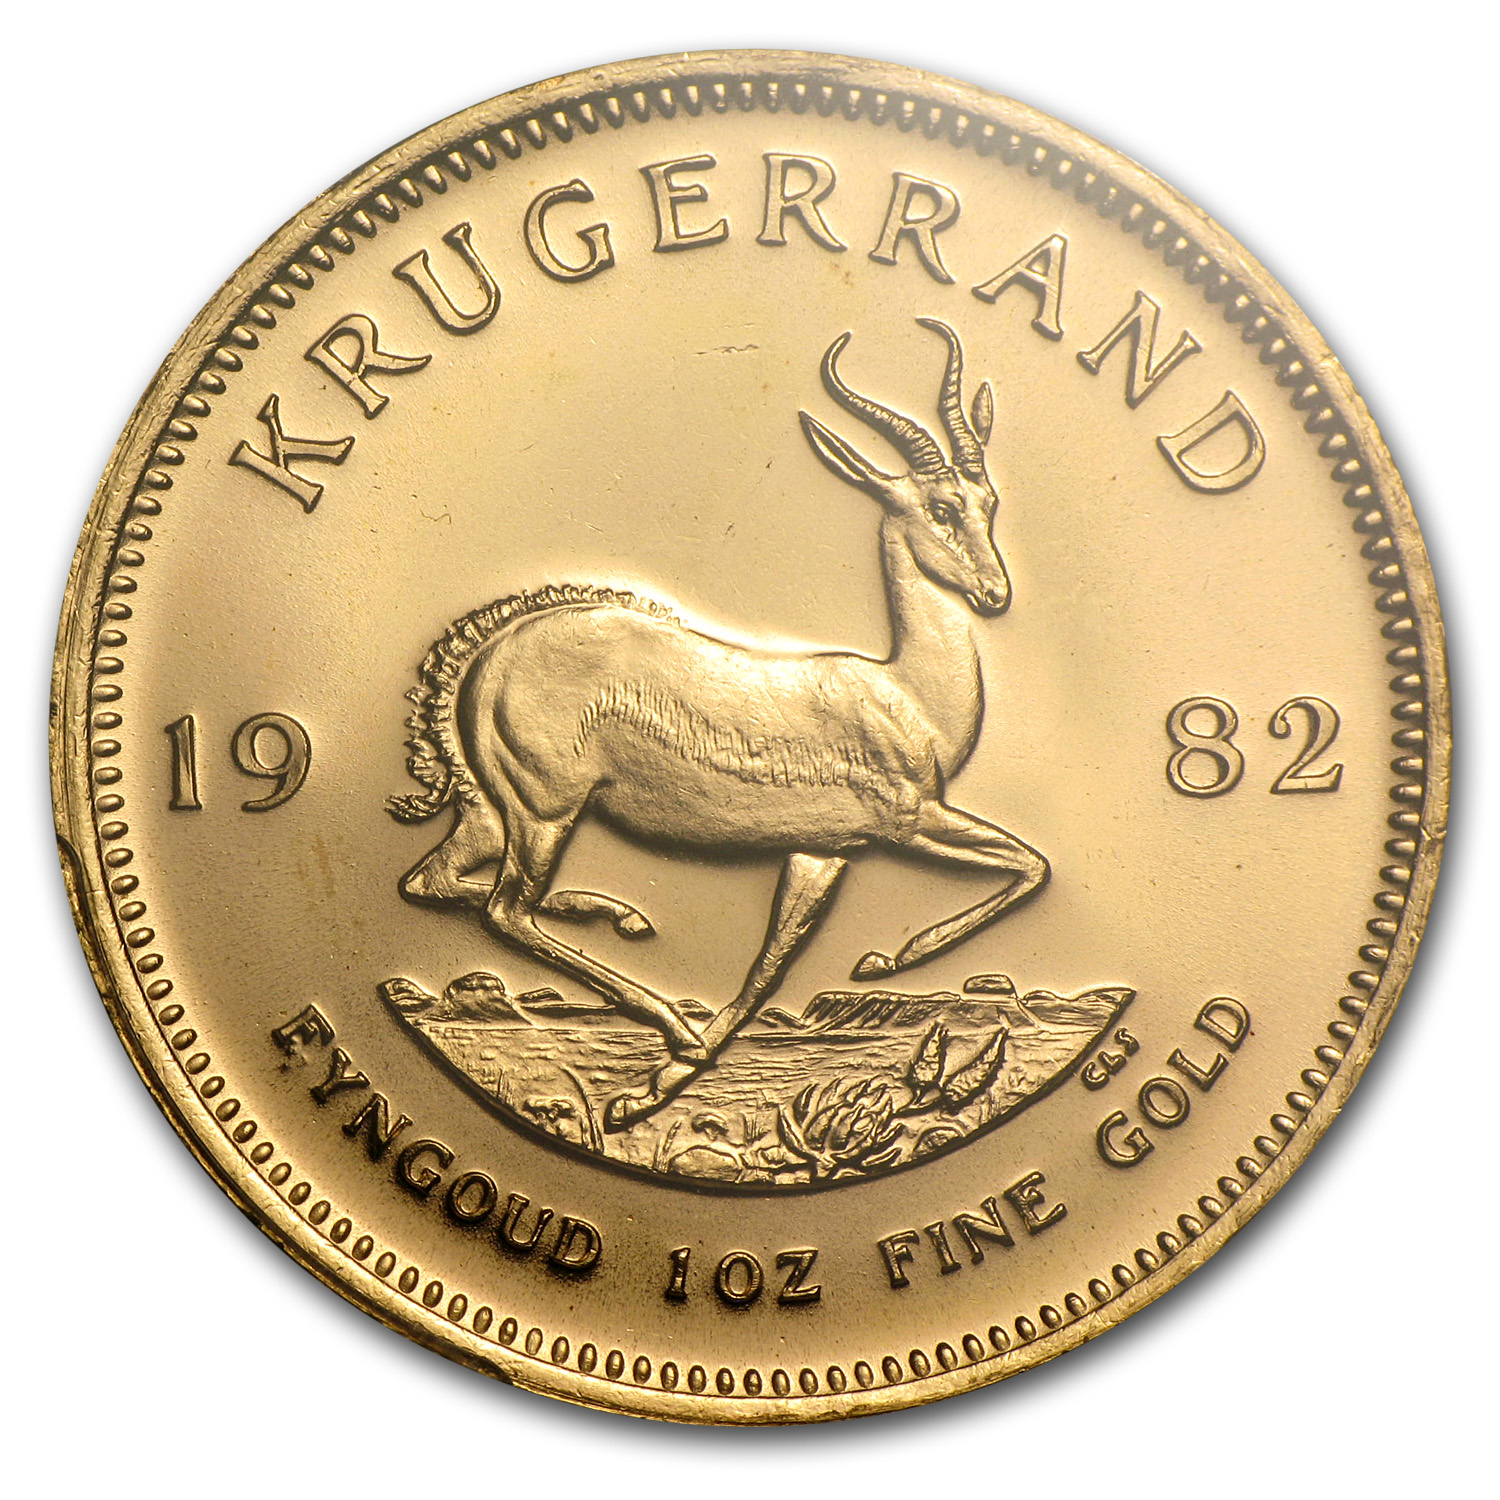 1982 1 oz Gold South African Krugerrand PCGS MS-66 (WTC)